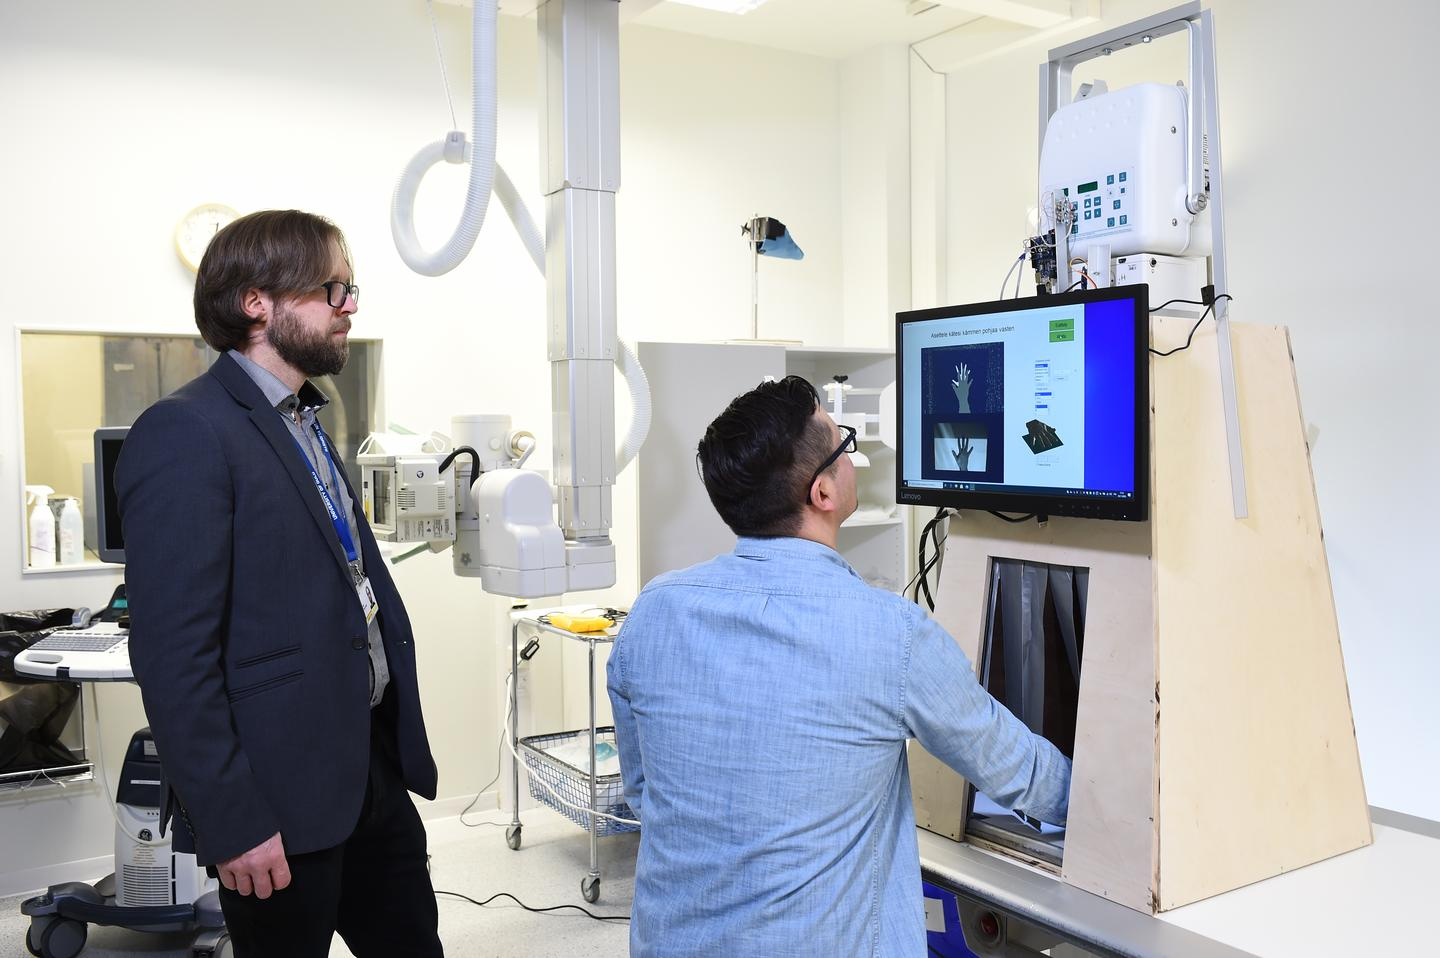 The prototype portable X-ray machine, with its designers Timo Liimatainen and Matti Hanni